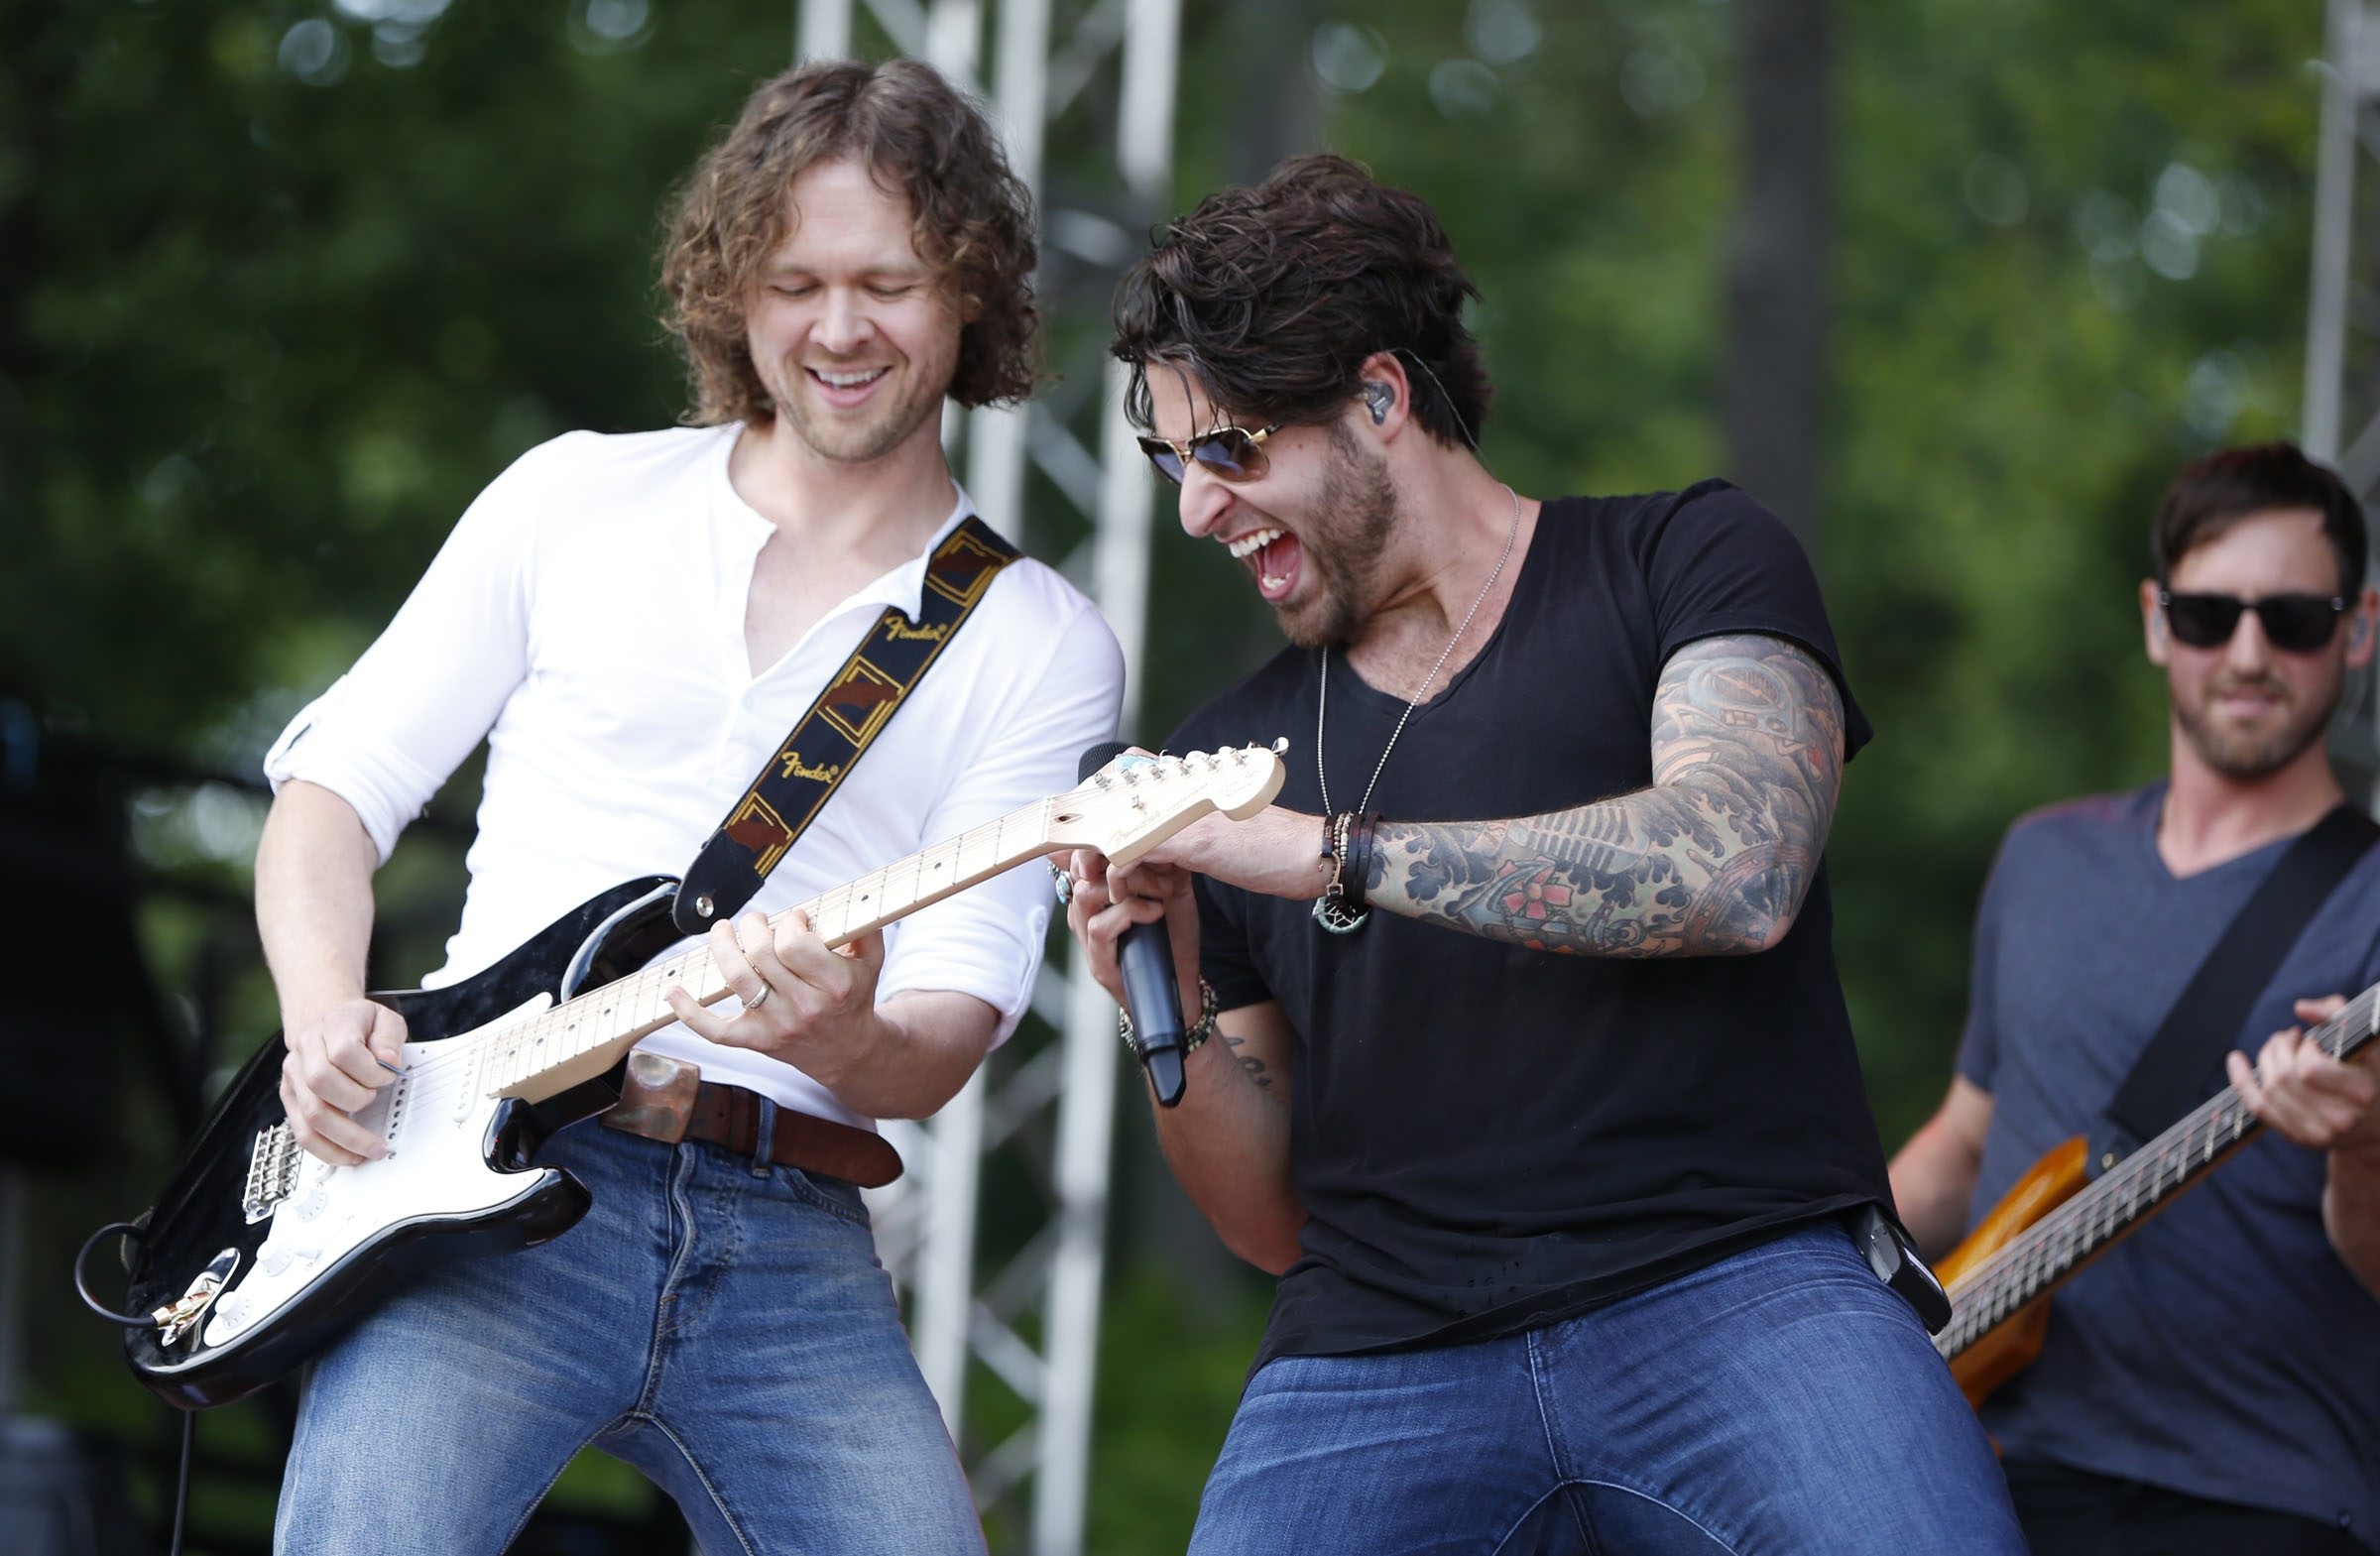 Austin Webb, right, and his gang of four rock-'n'-rollers brought a mixture of alt-country, Top-40 and thumping rock to Friday's Jam in the Valley lineup. The festival continues today in Varysburg with performances by Chris Young, Parmalee and Dallas Smith, among others.